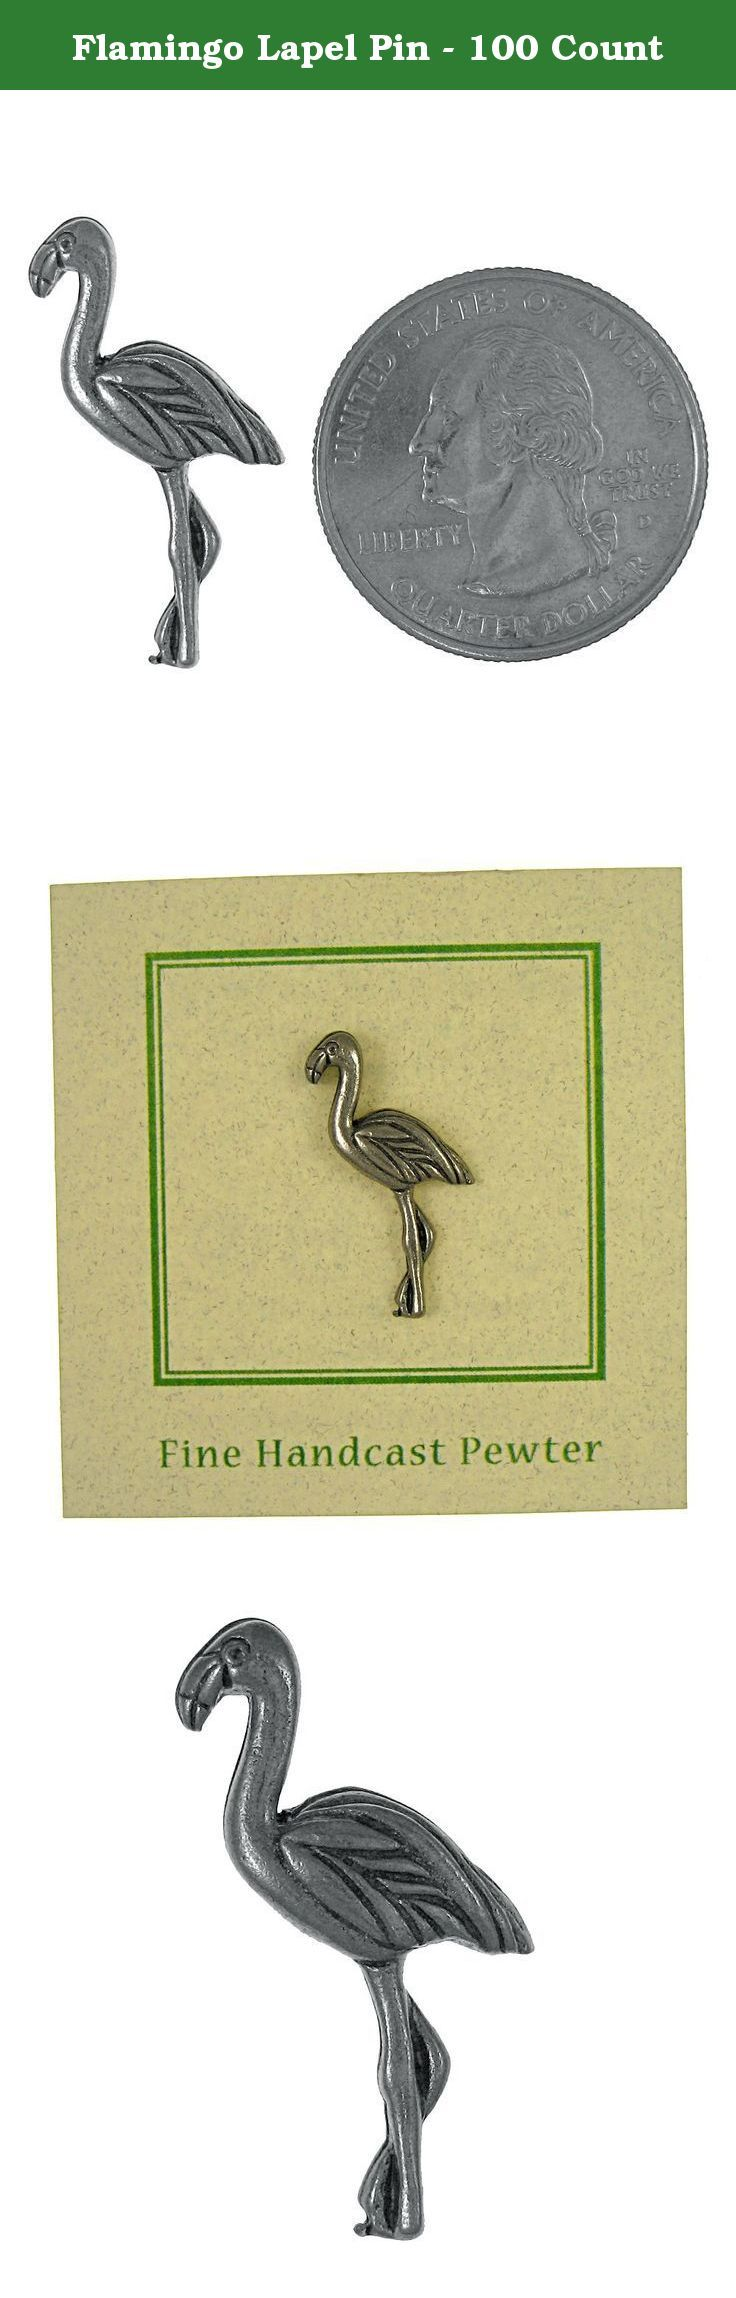 Flamingo Lapel Pin - 100 Count. The pink of the flamingo comes from the carotenes that they consume. Their plumage, feathers, and bills are pink and red because of what they eat. Handcast in solid, lead-free pewter, each of our pins is an original three dimensional sculpture signed by the artist, Jim Clift. Individually packaged on one of our signature presentation cards, our pins arrive ready for gift giving! Handcrafted in our studio in Coventry, RI, our pins are 100% US made.